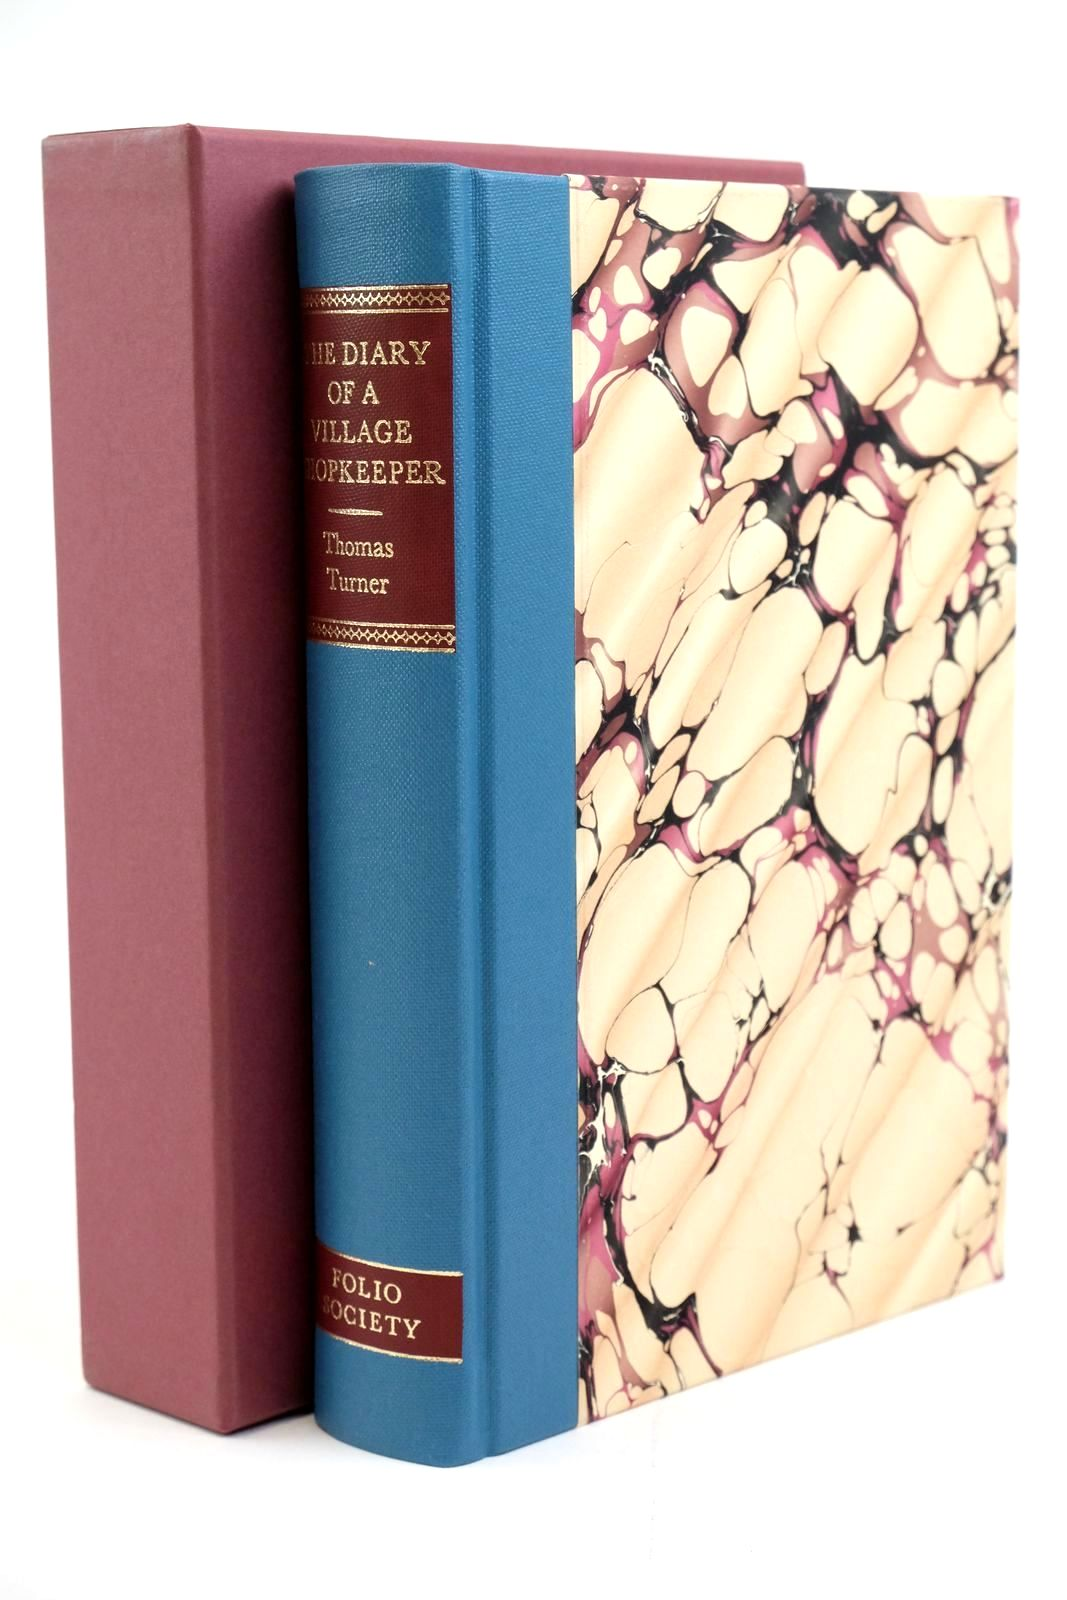 Photo of THE DIARY OF A VILLAGE SHOPKEEPER 1754-1765 written by Turner, Thomas Vaisey, David illustrated by Macgregor, Miriam published by Folio Society (STOCK CODE: 1321380)  for sale by Stella & Rose's Books